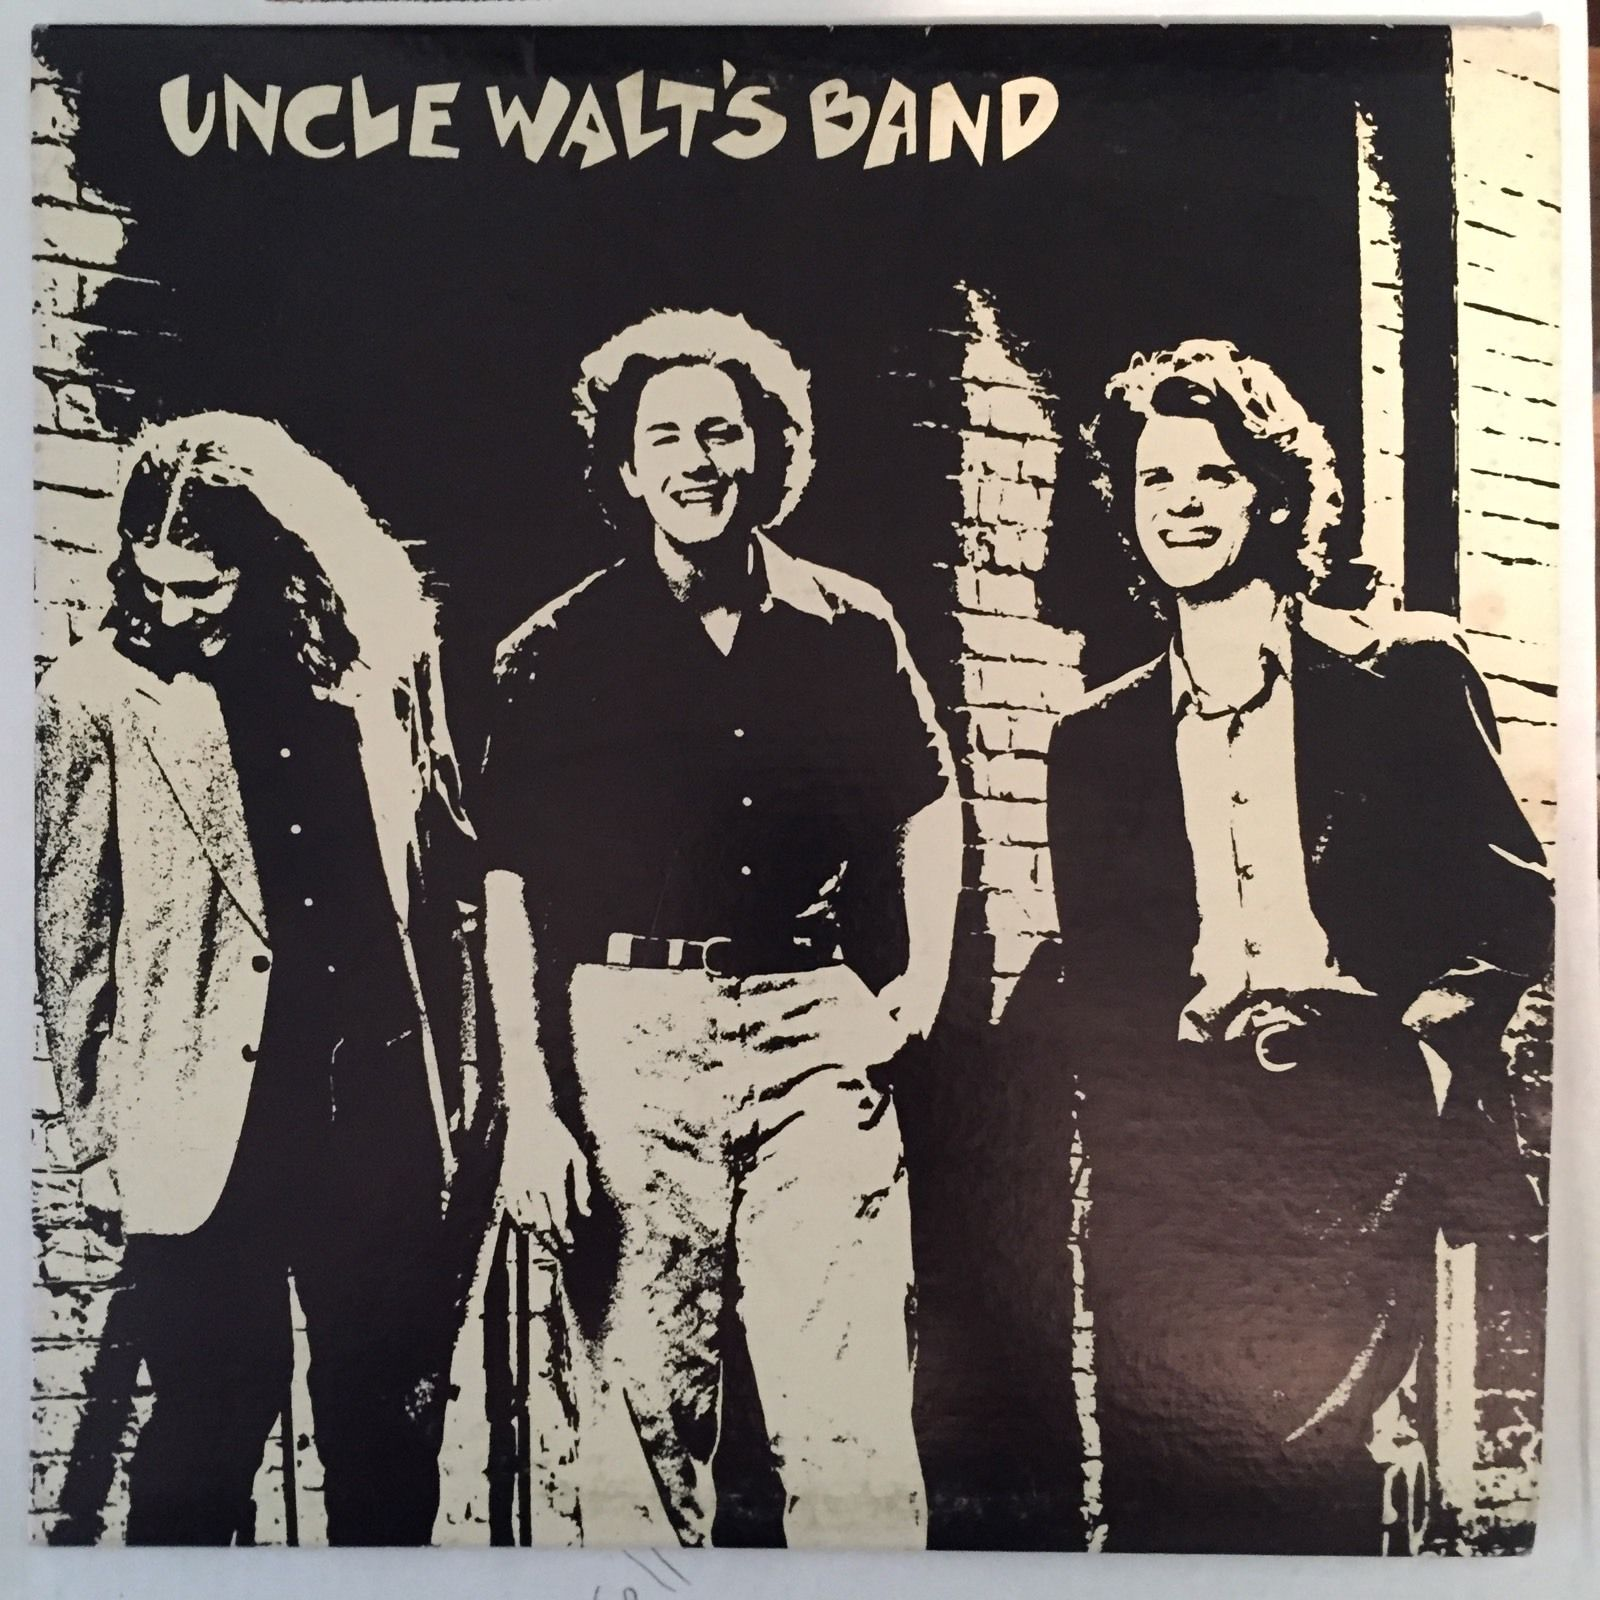 Uncle Walt's Band